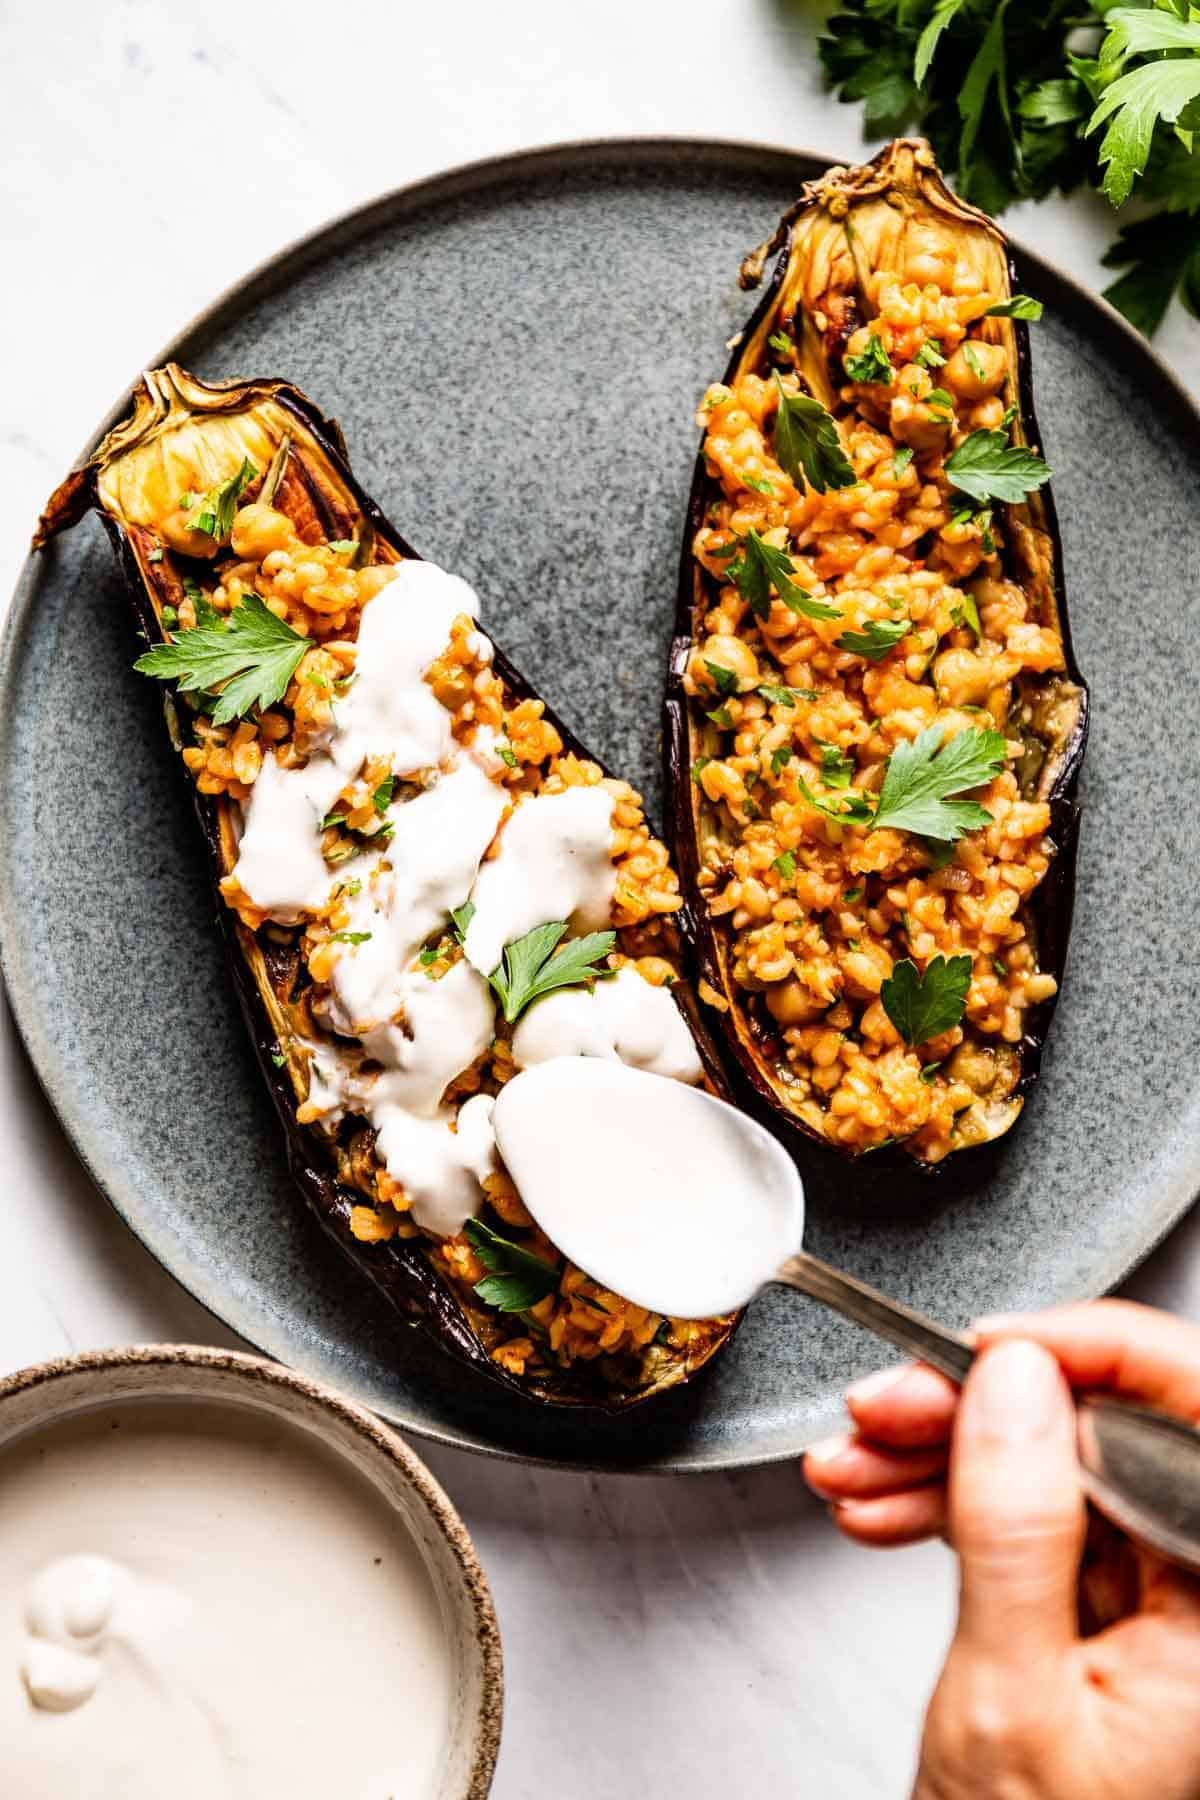 Baked stuffed eggplant is being drizzled with tahini sauce